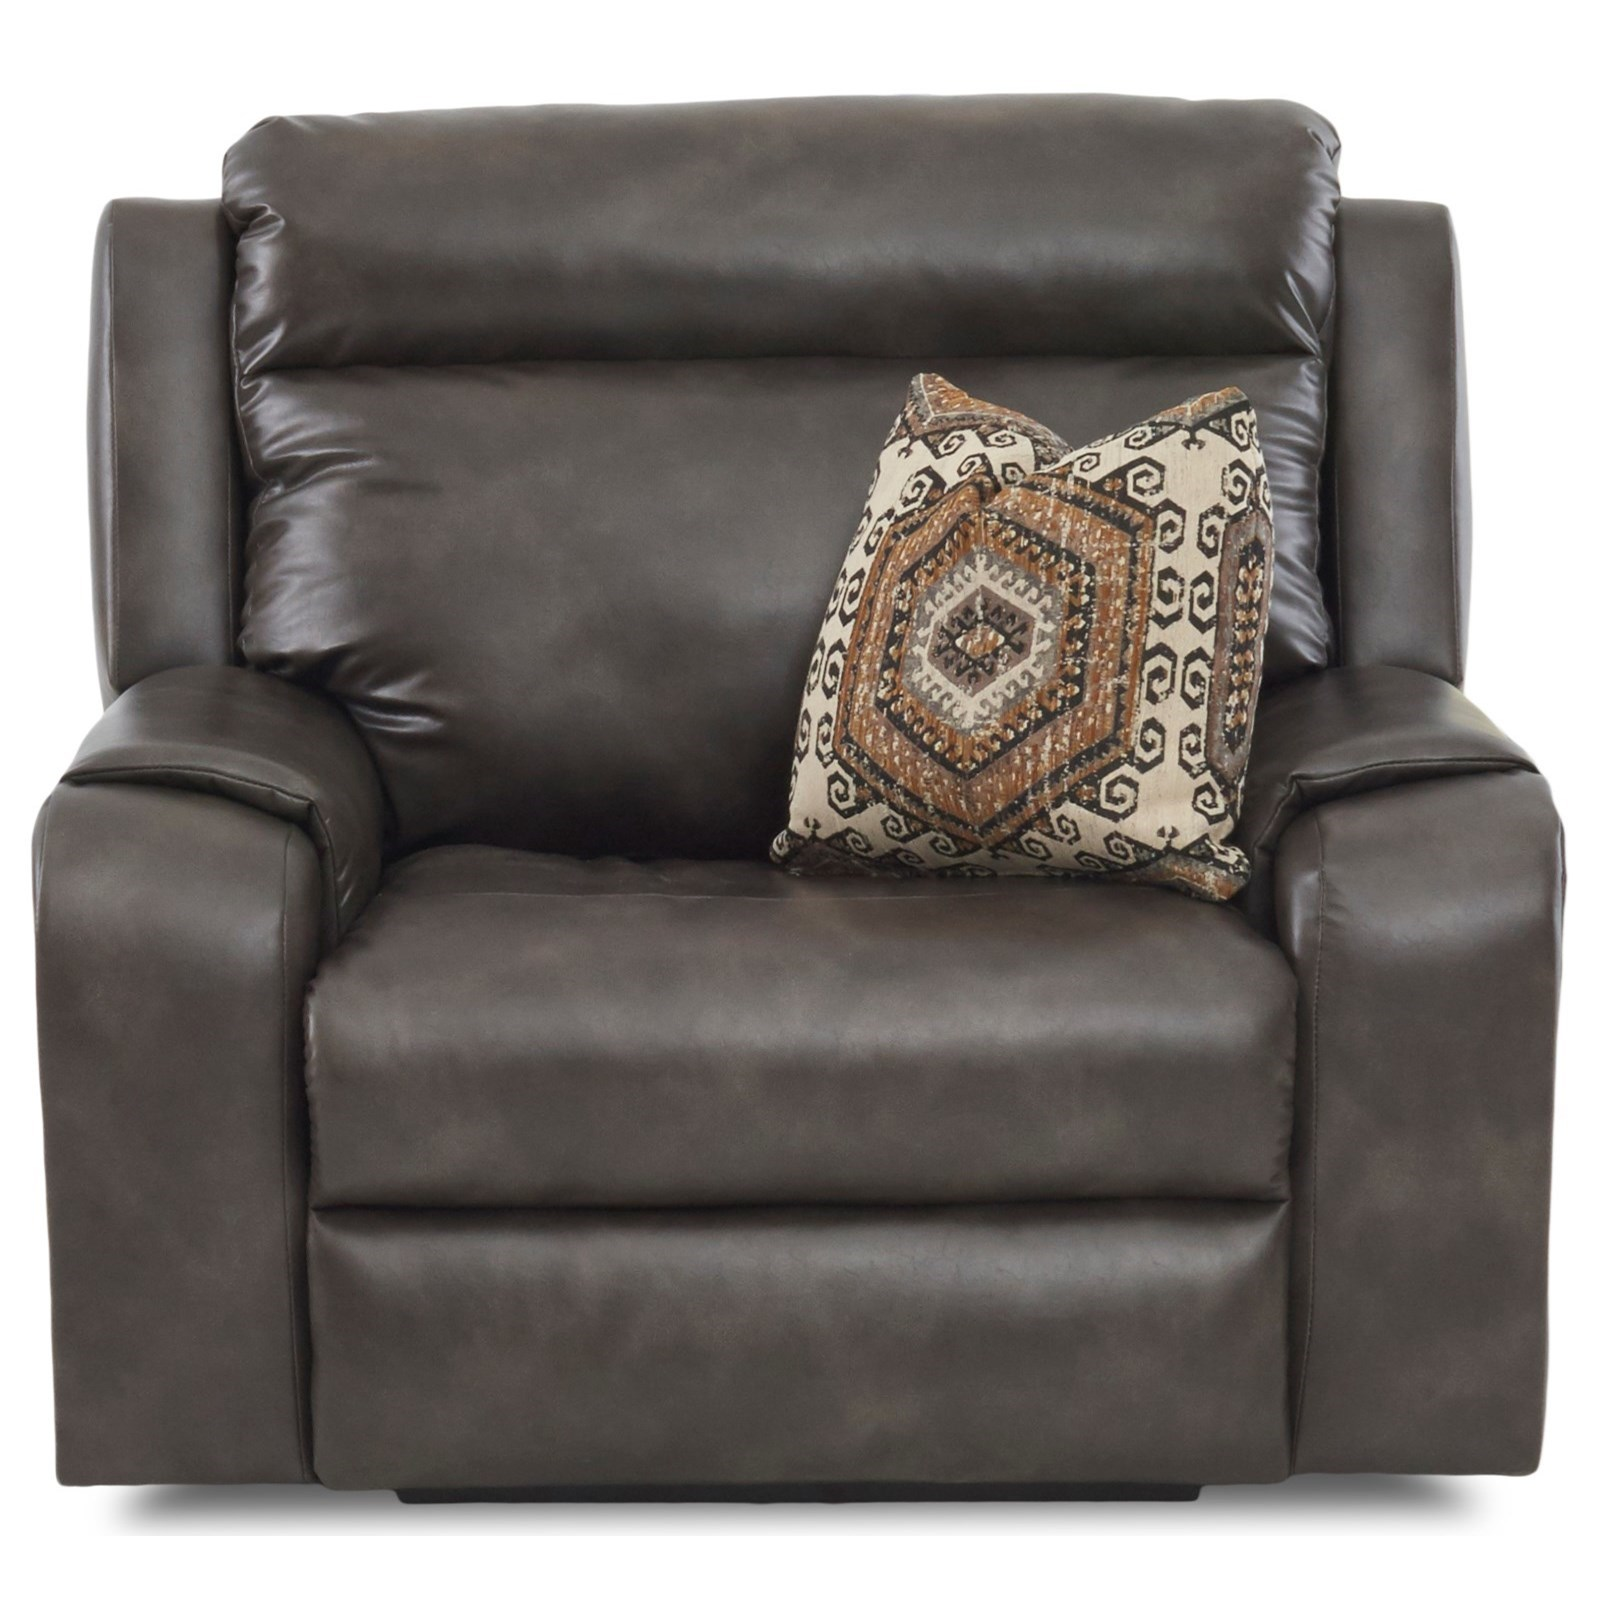 Recliner with Wide Seat and Toss Pillow